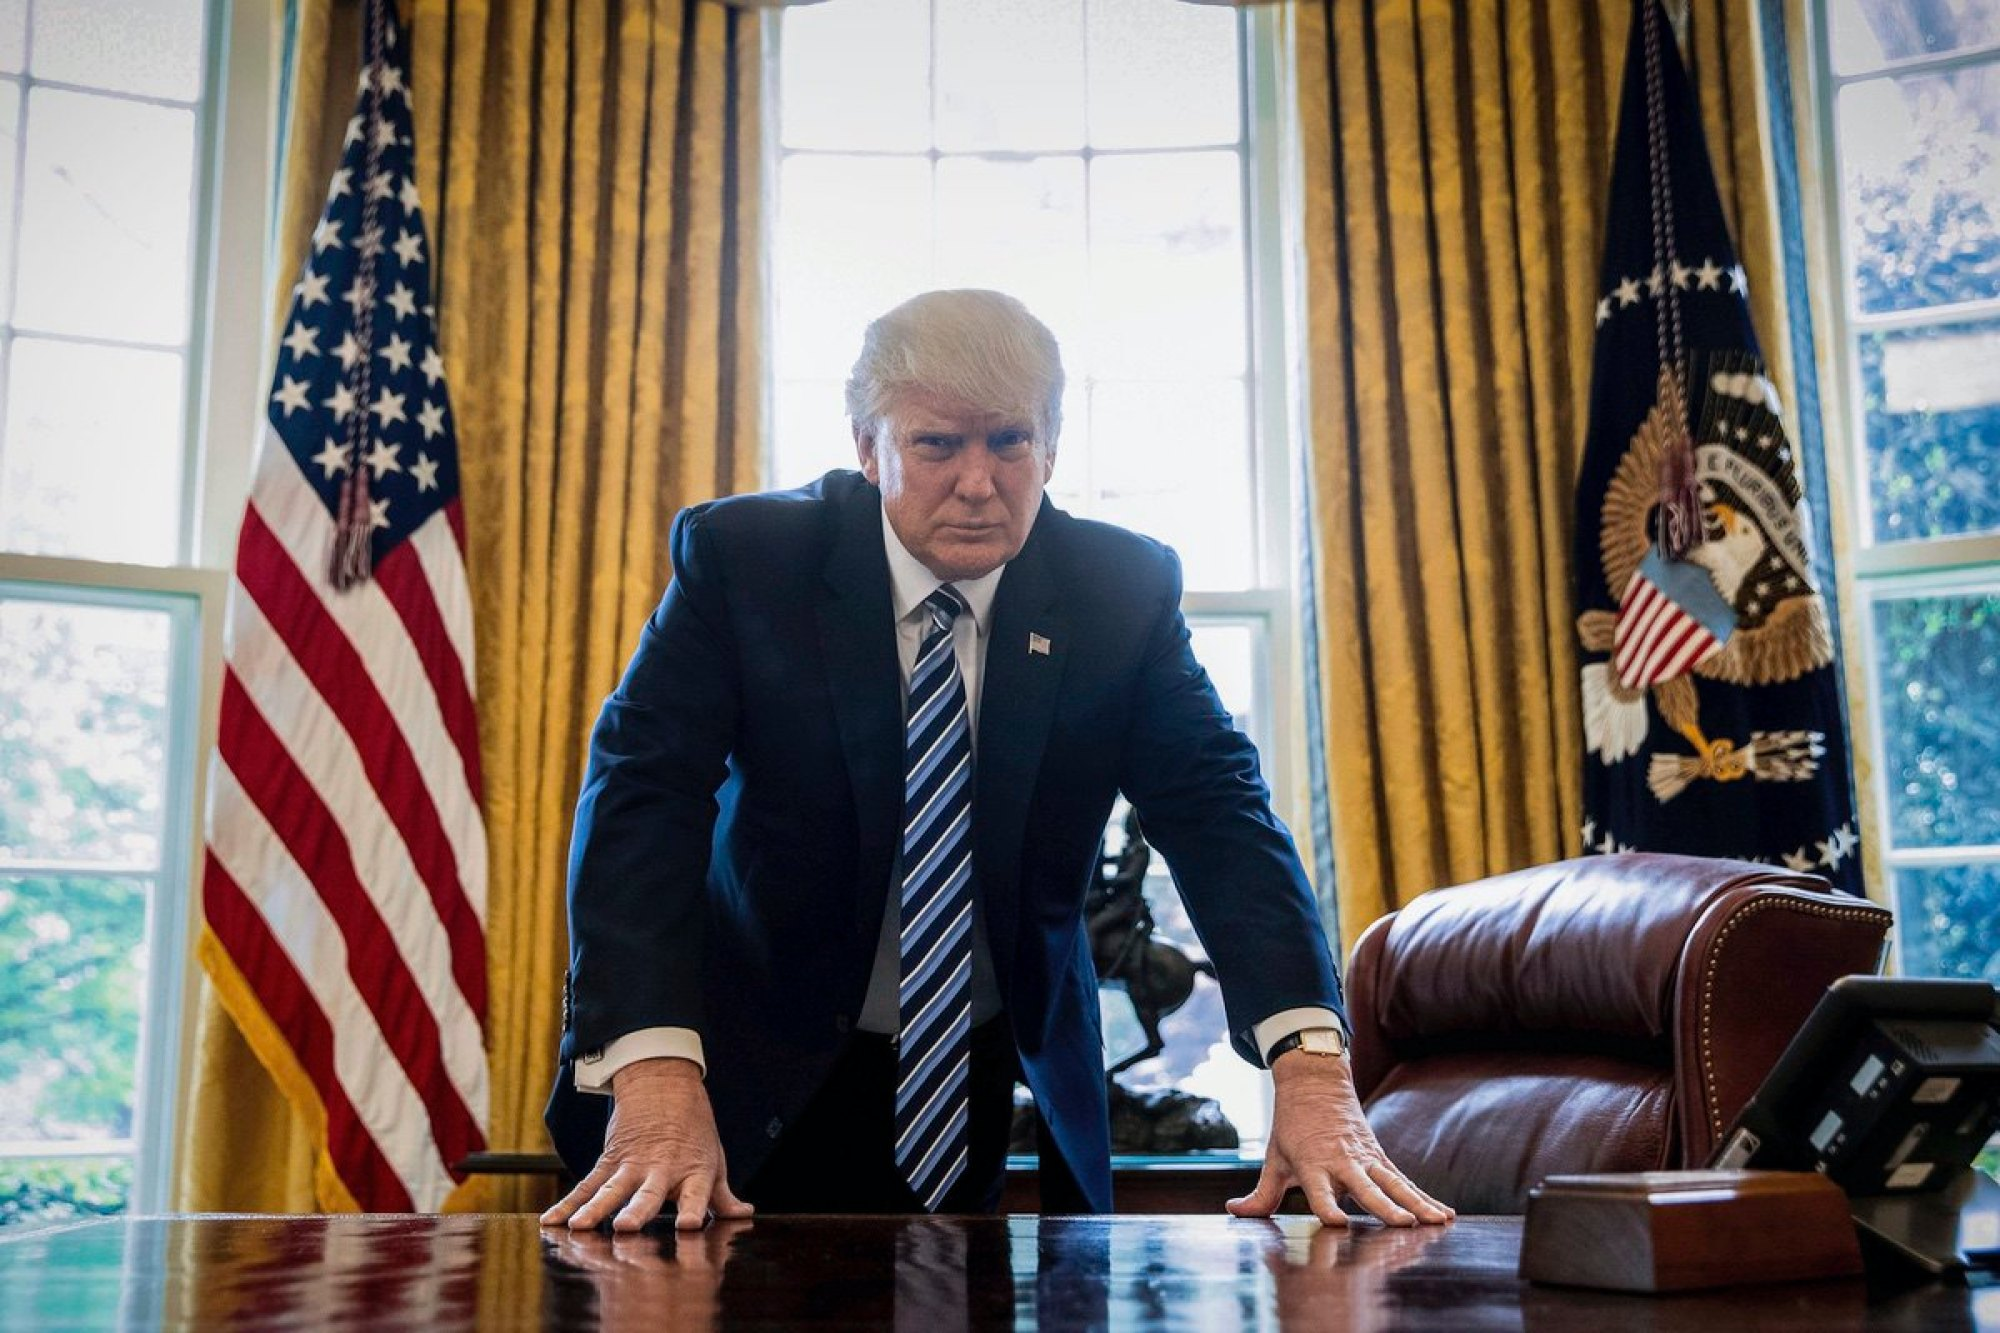 President Donald Trump poses for a portrait in the Oval Office in Washington after an interview with The Associated Press. April 21, 2017 (AP Photo/Andrew Harnik)